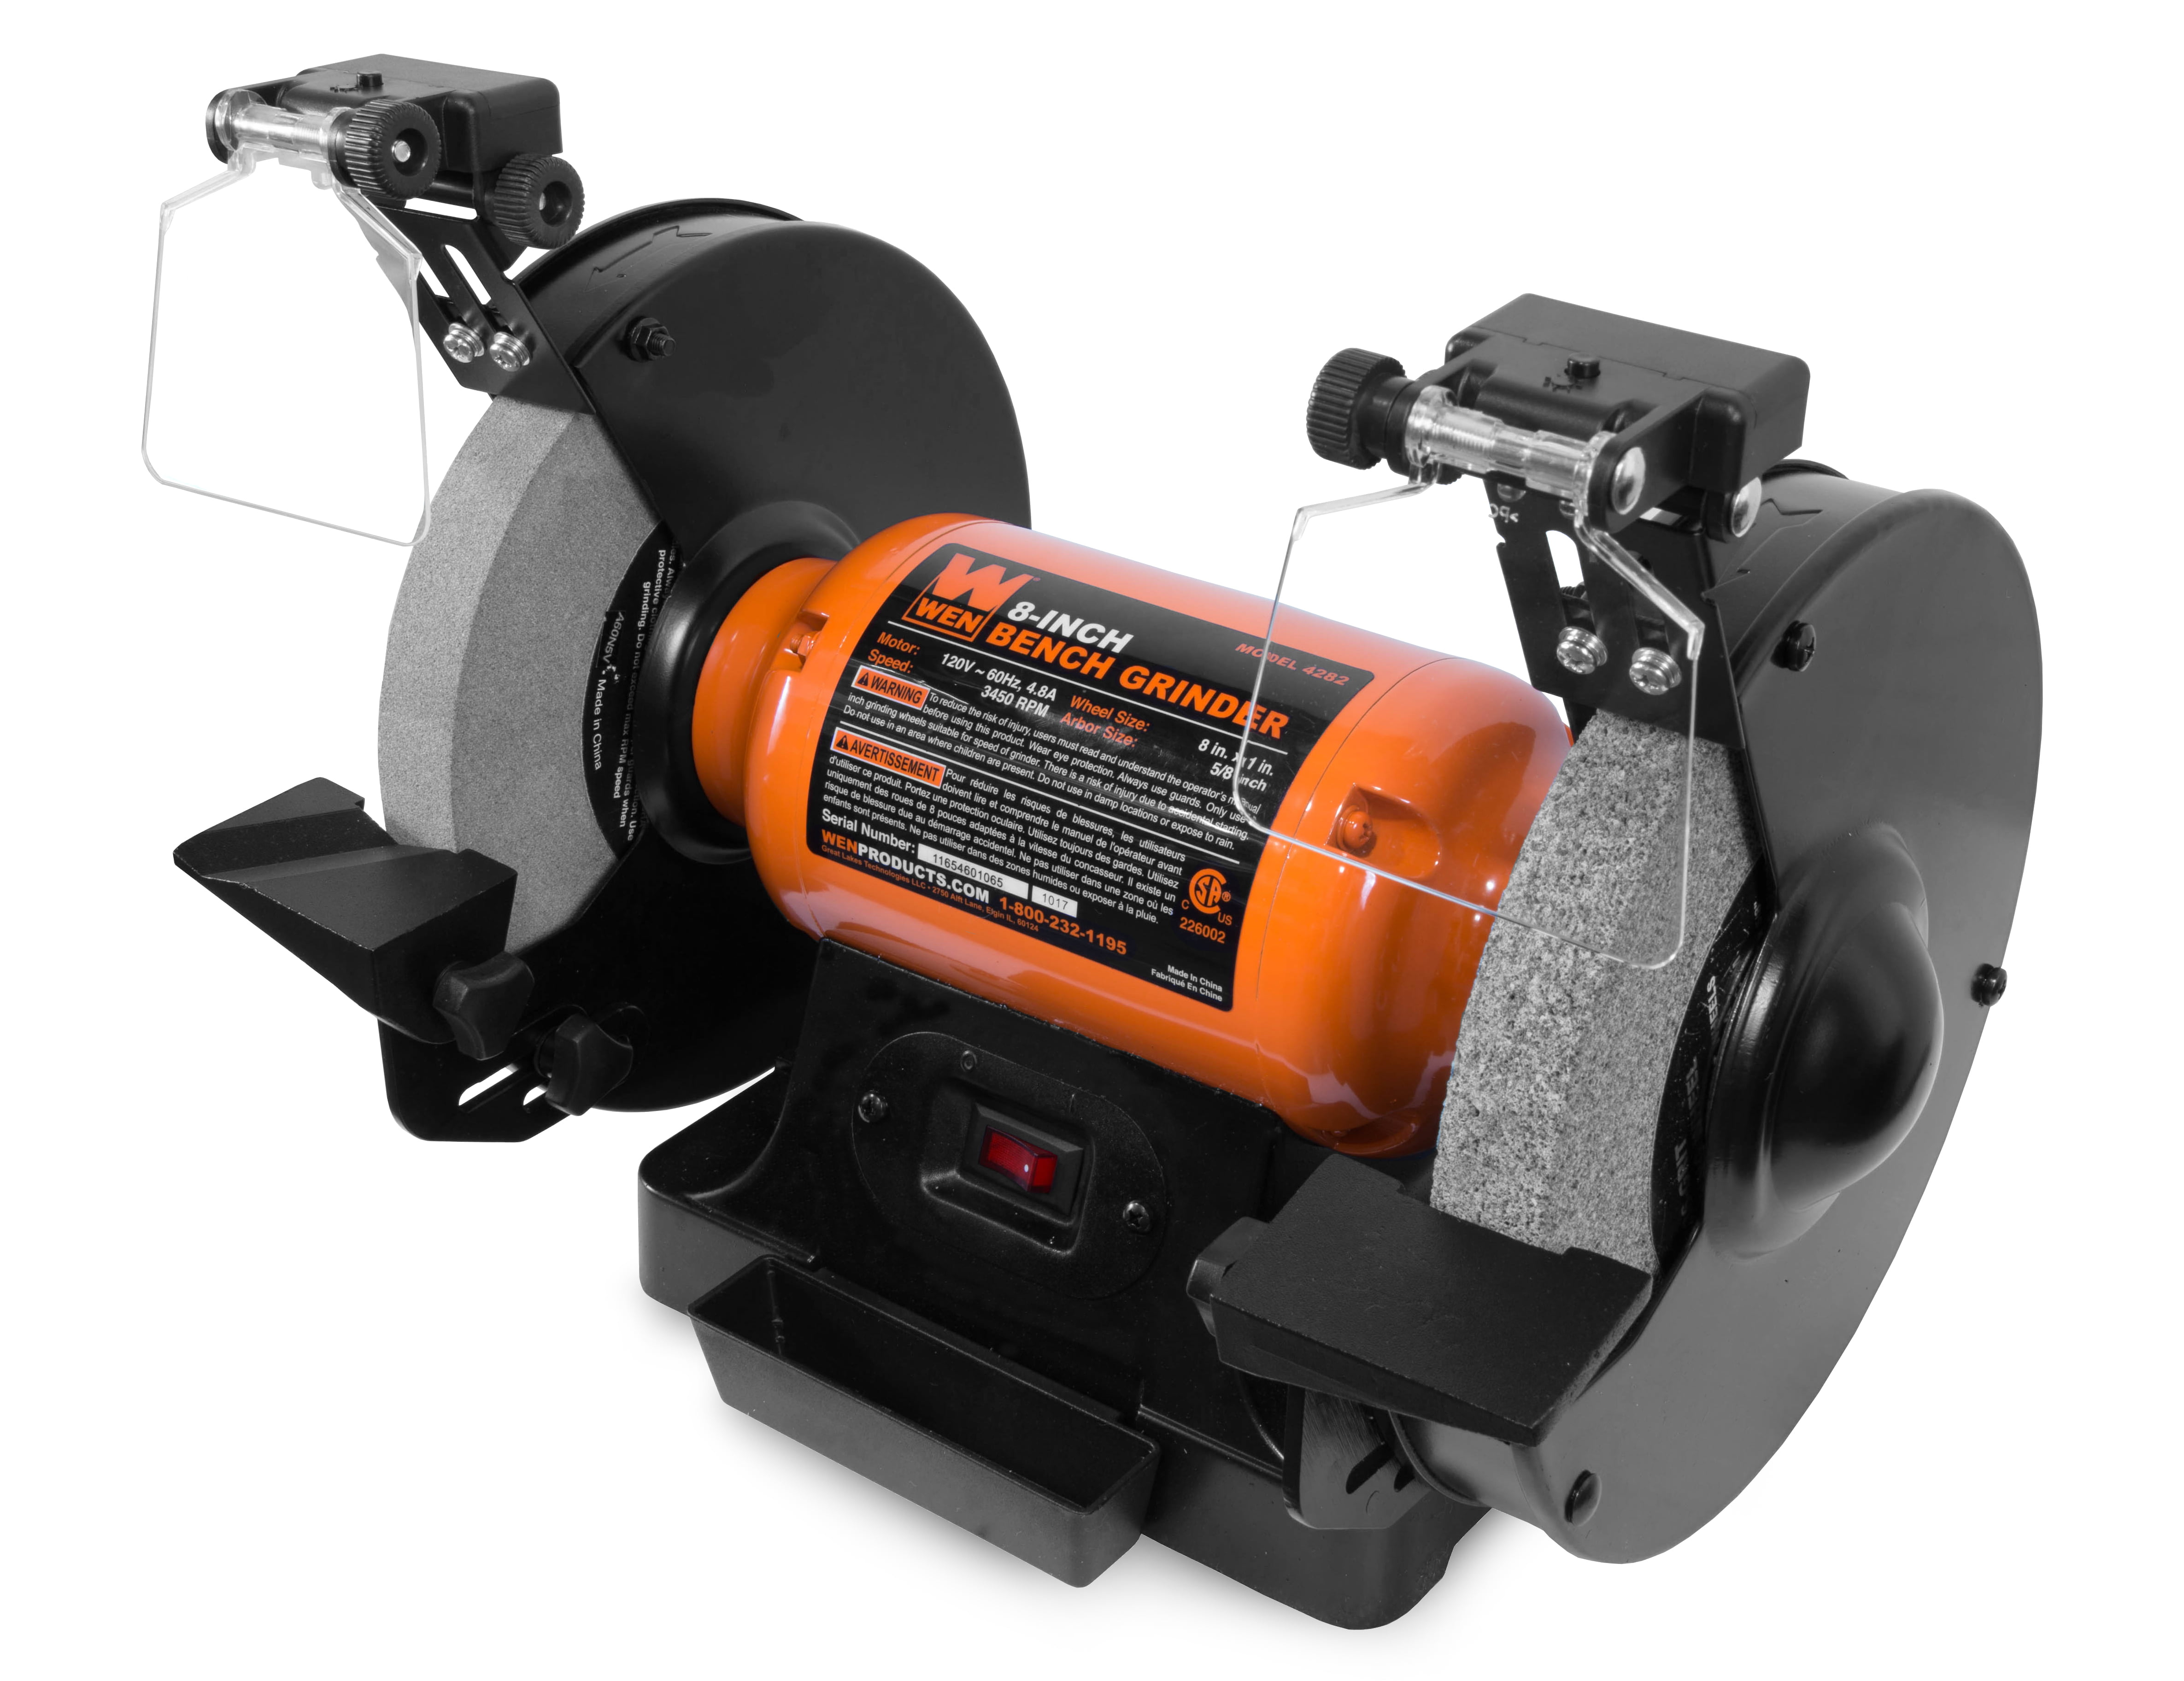 Wen 4 8 Amp 8 Inch Bench Grinder With Led Work Lights And Quenching